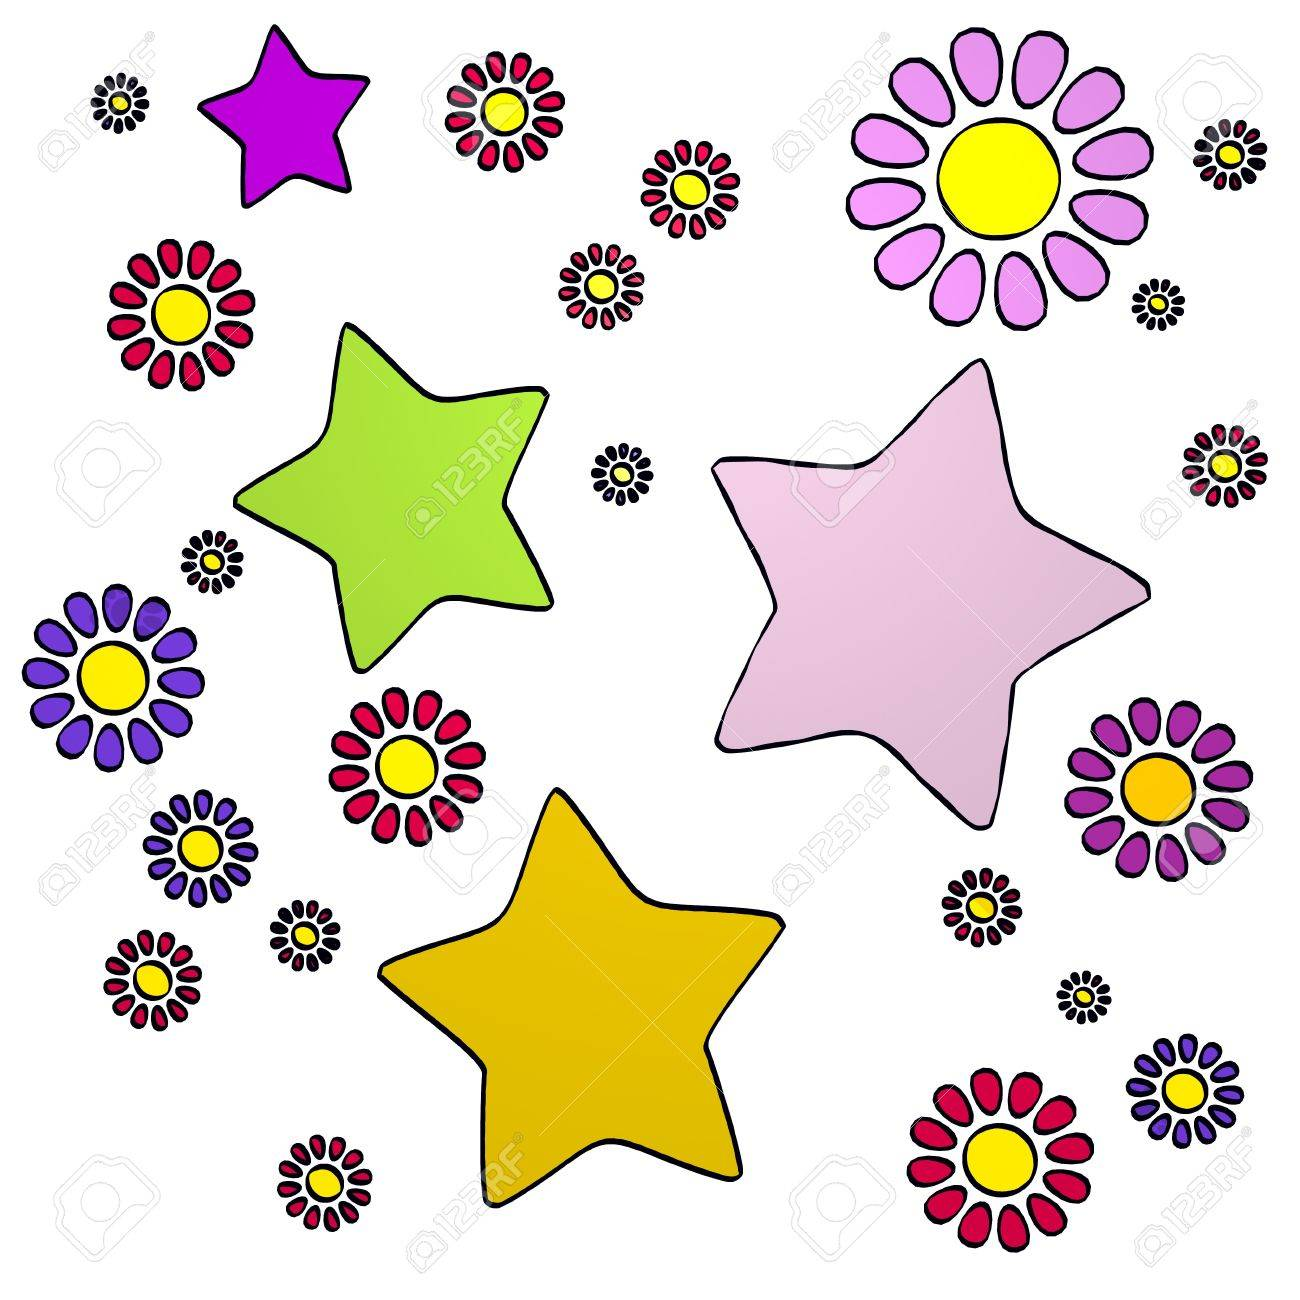 Cute spring flower - Stock Photo Happy Spring Flower Hand Drawn Sketch Of Four Star With Cute Flowers On White Background